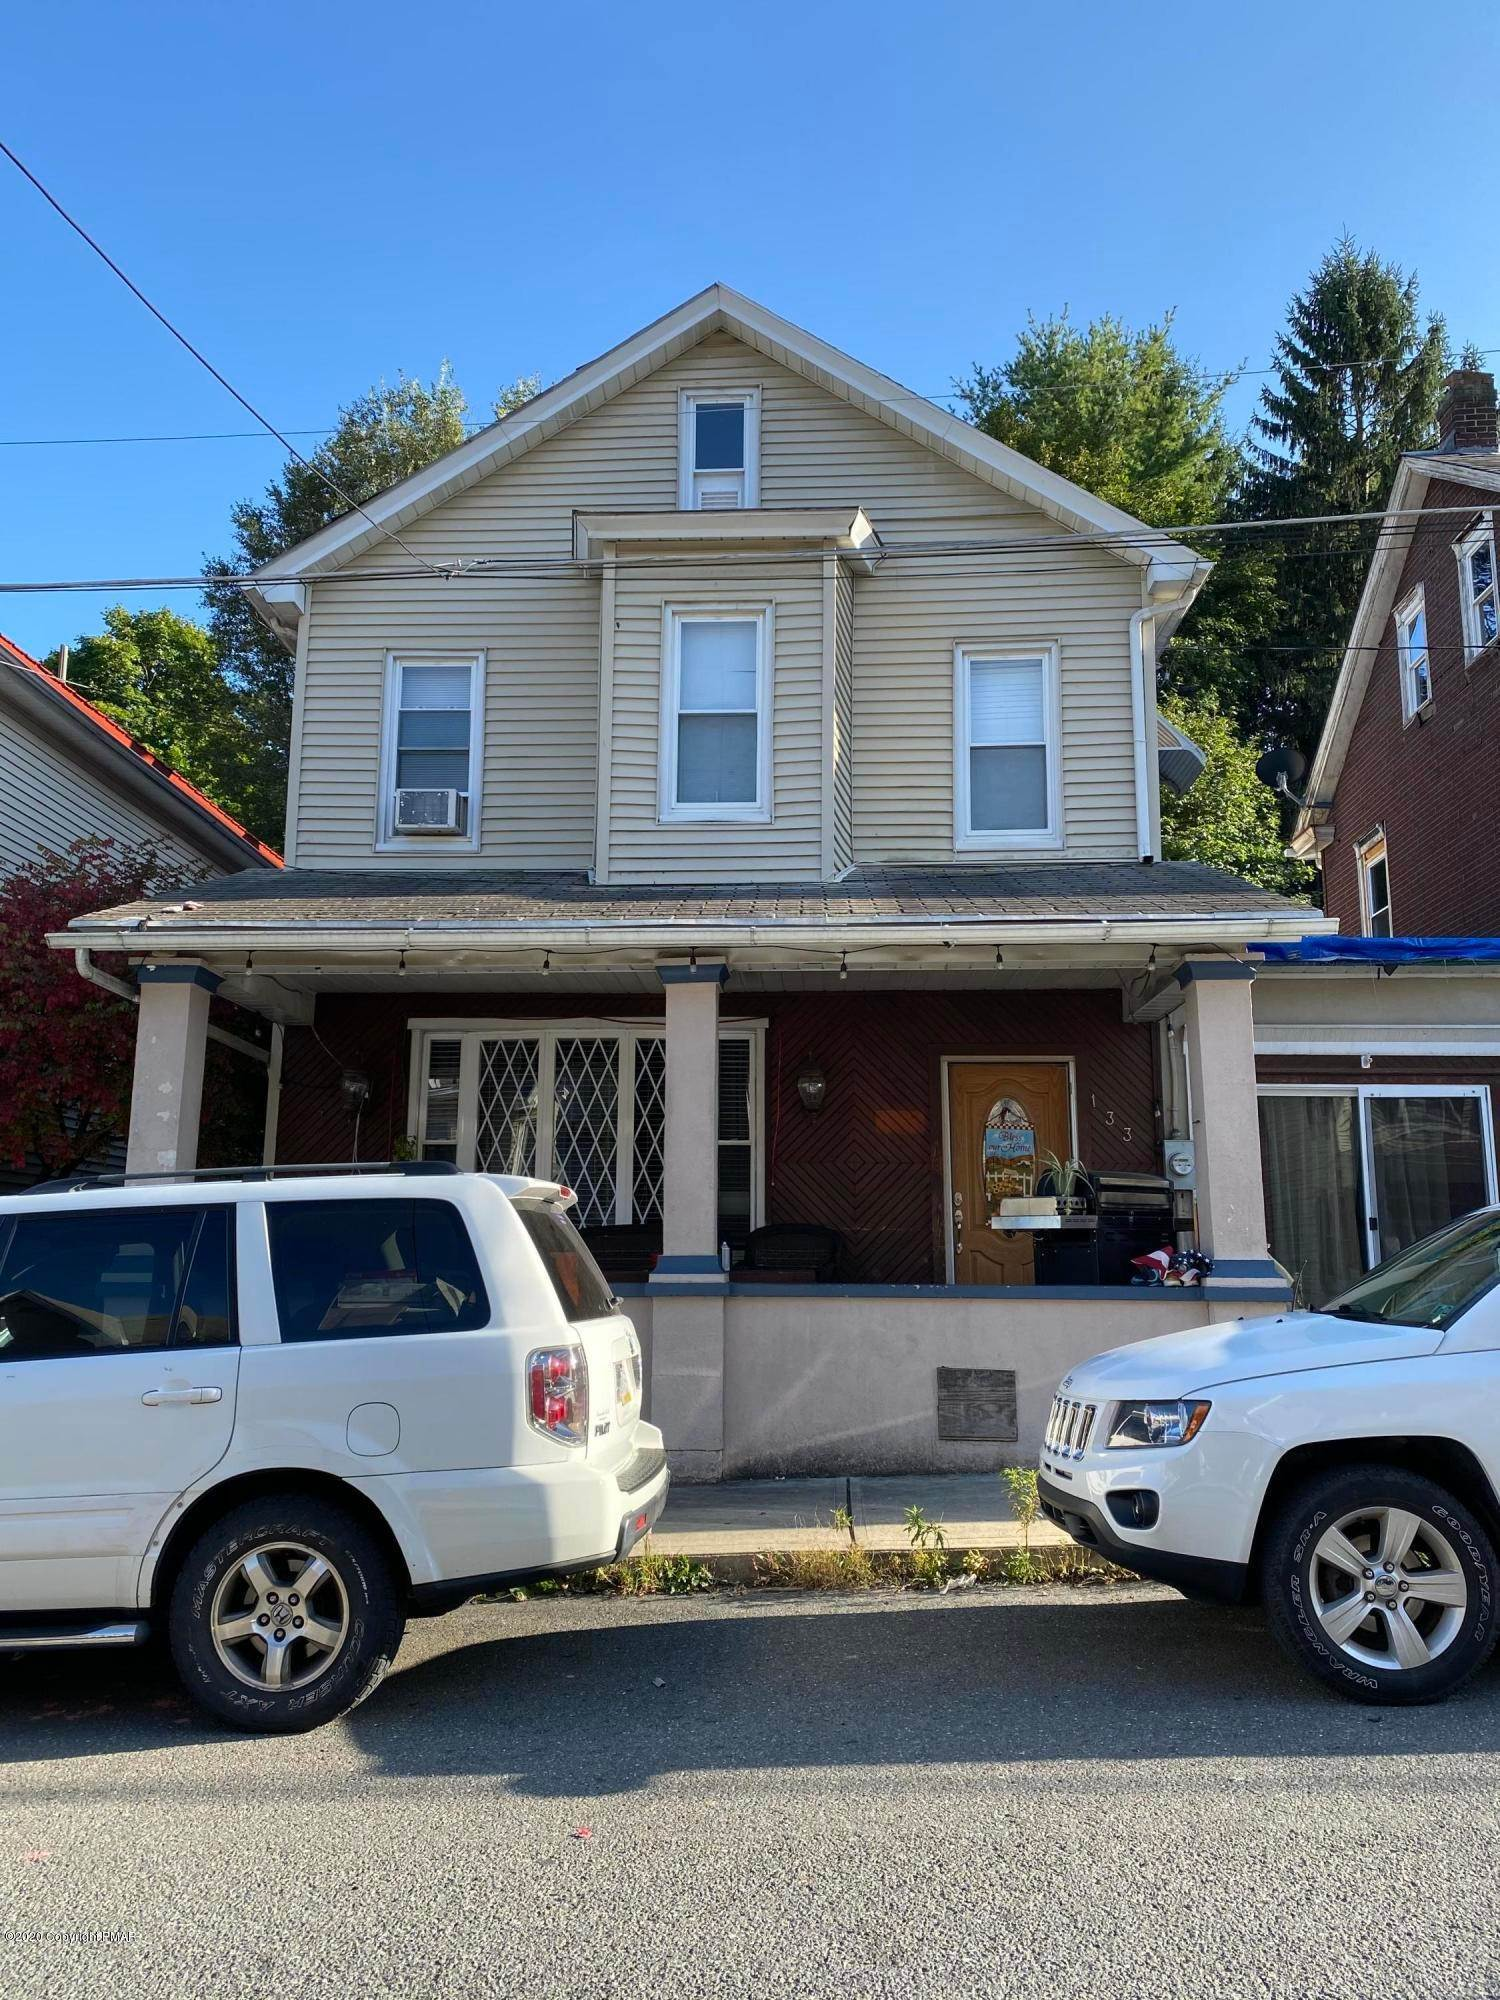 1. Single Family Homes for Sale at 133 Jamestown St Lehighton, Pennsylvania 18235 United States